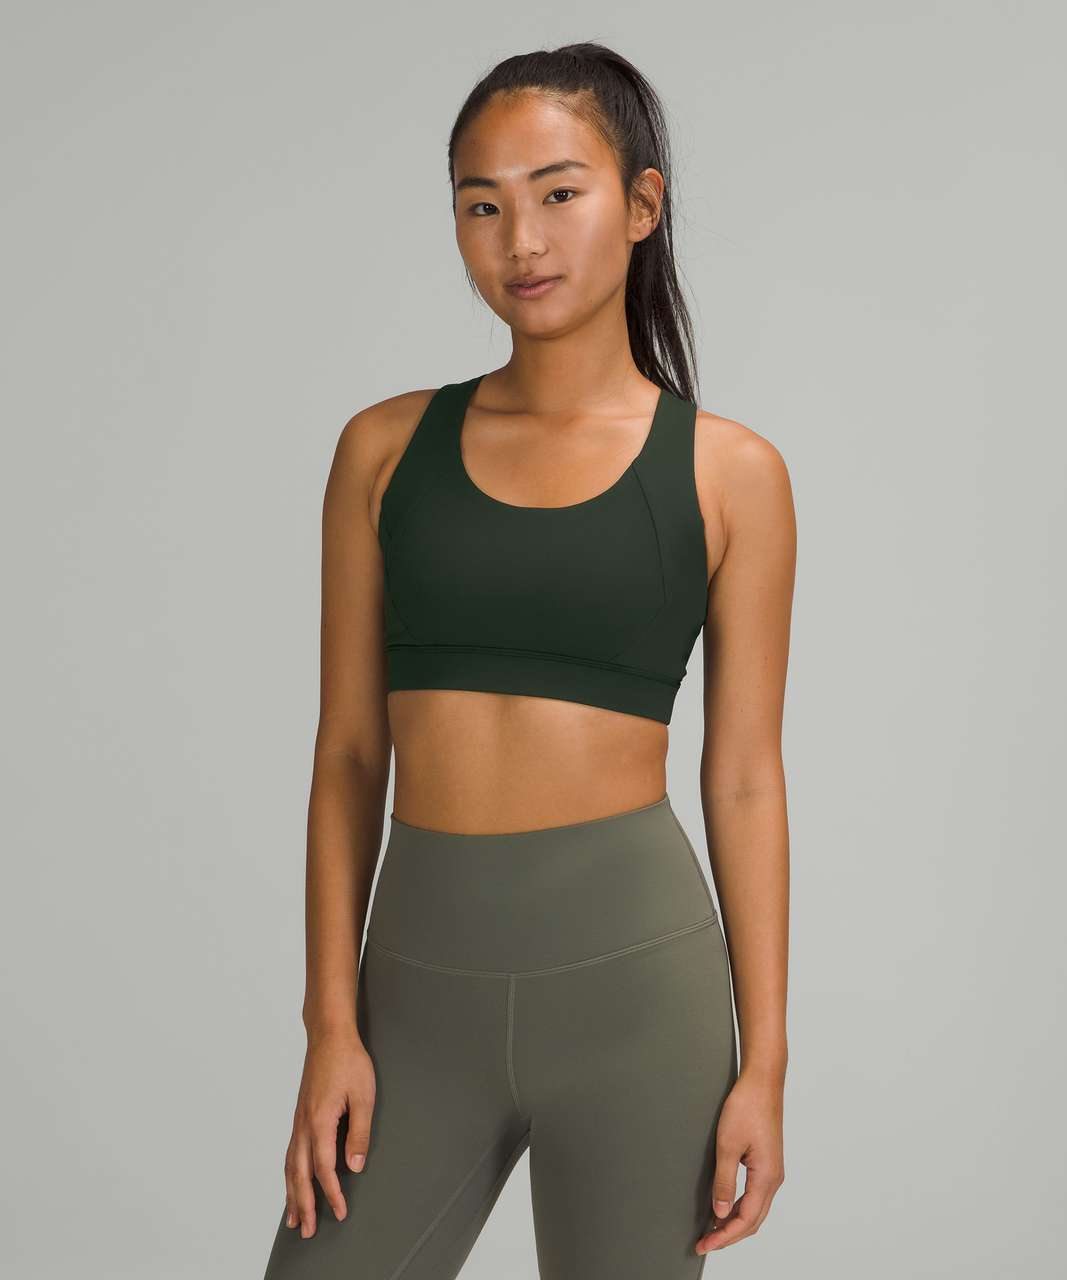 Lululemon Free to Be Elevated Bra *Light Support, DD/DDD(E) Cups - Rainforest Green / Green Twill